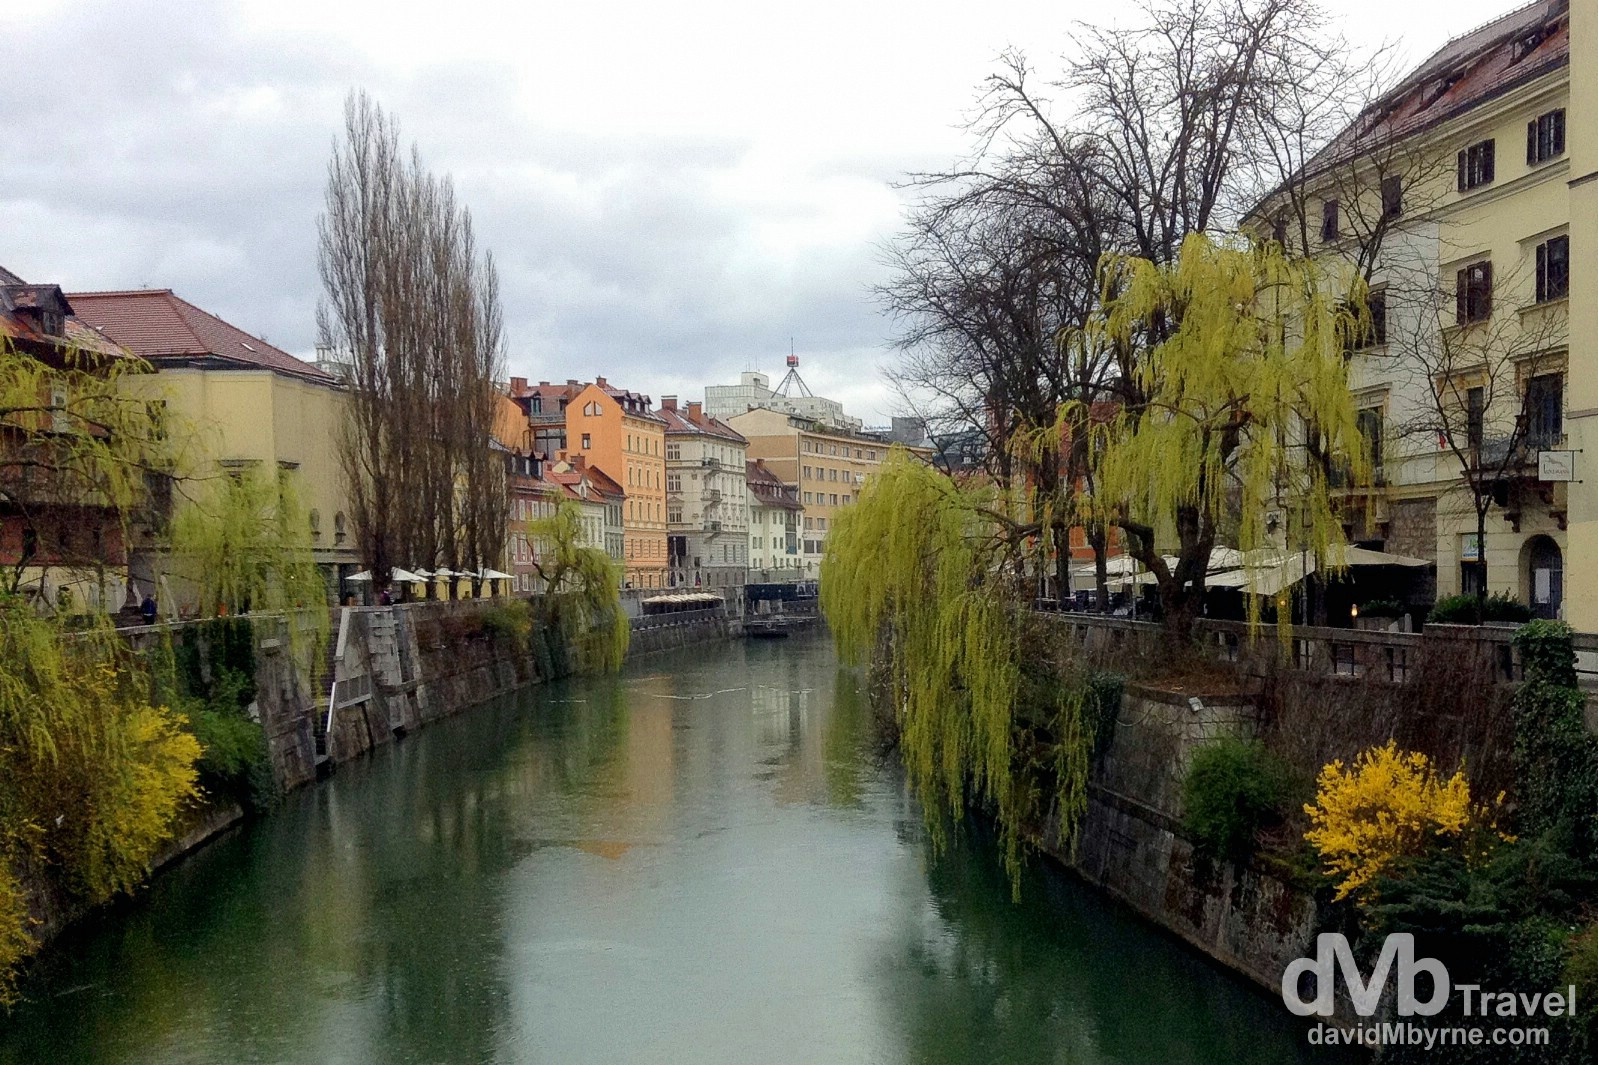 The Ljubljanica river in Ljubljana, Slovenia. March 23rd, 2014.